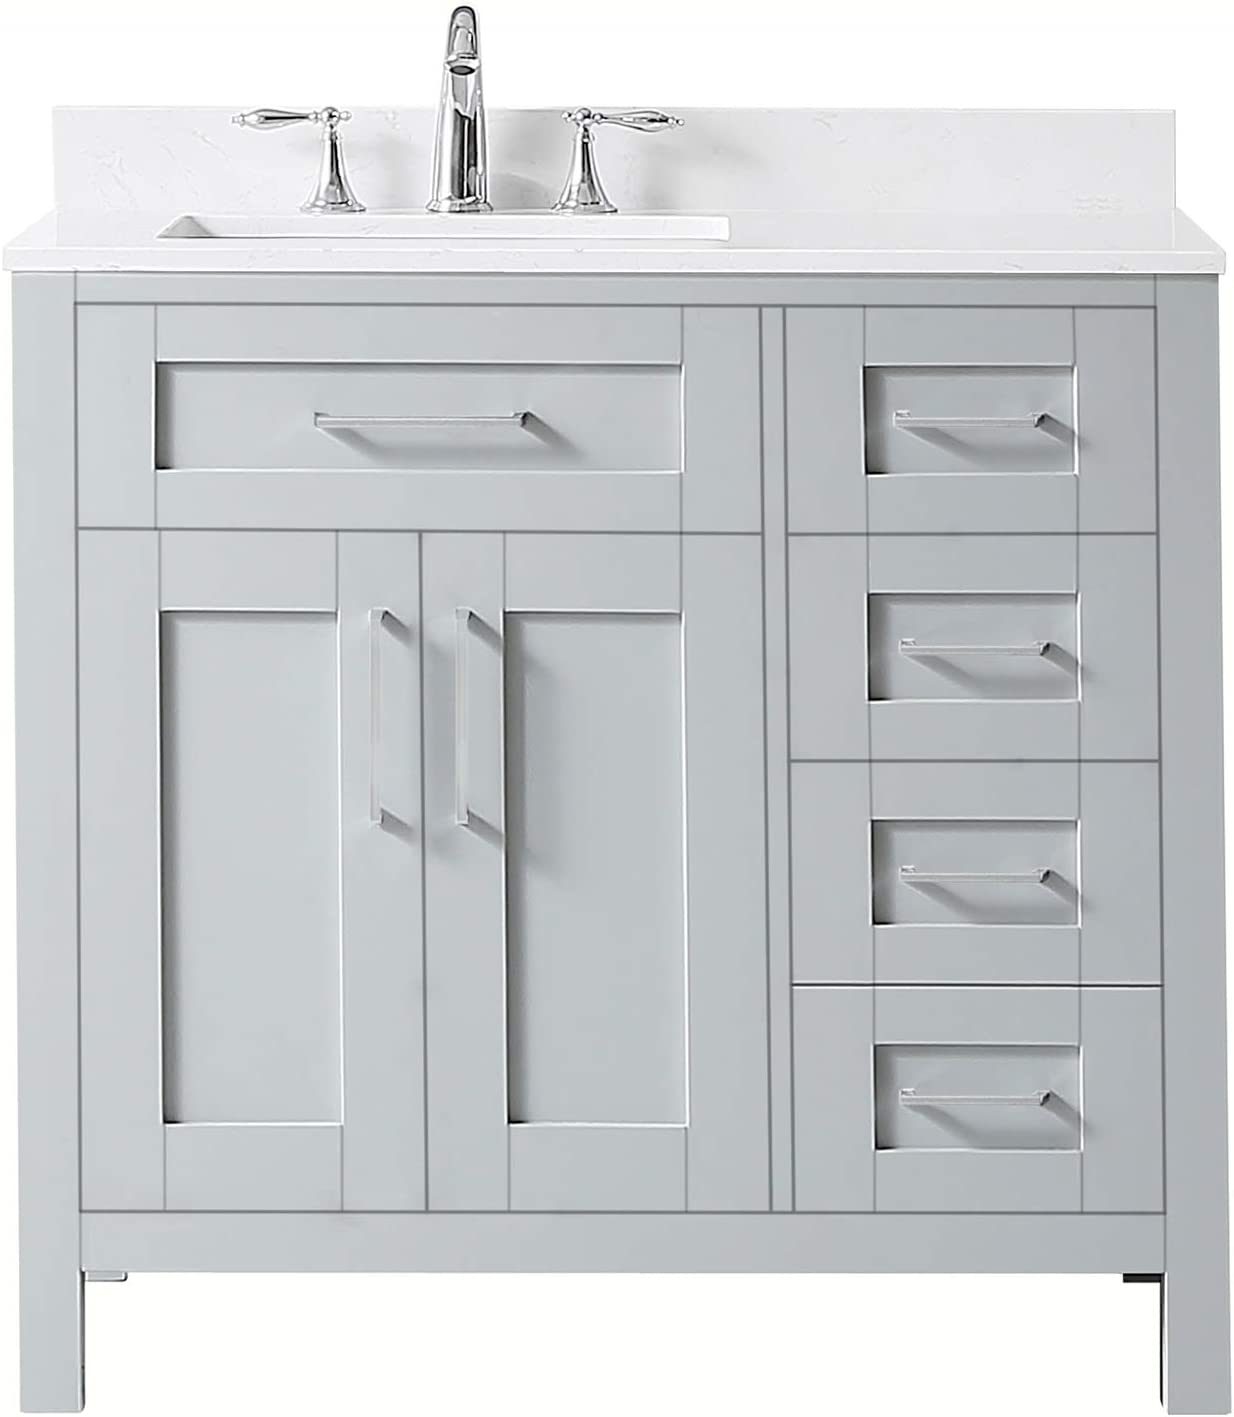 Ove Decors Maya 36 Set Bathroom Vanity Freestanding Cabinet, 36 inches, Dove Grey with Yves Cultured Marble Countertop